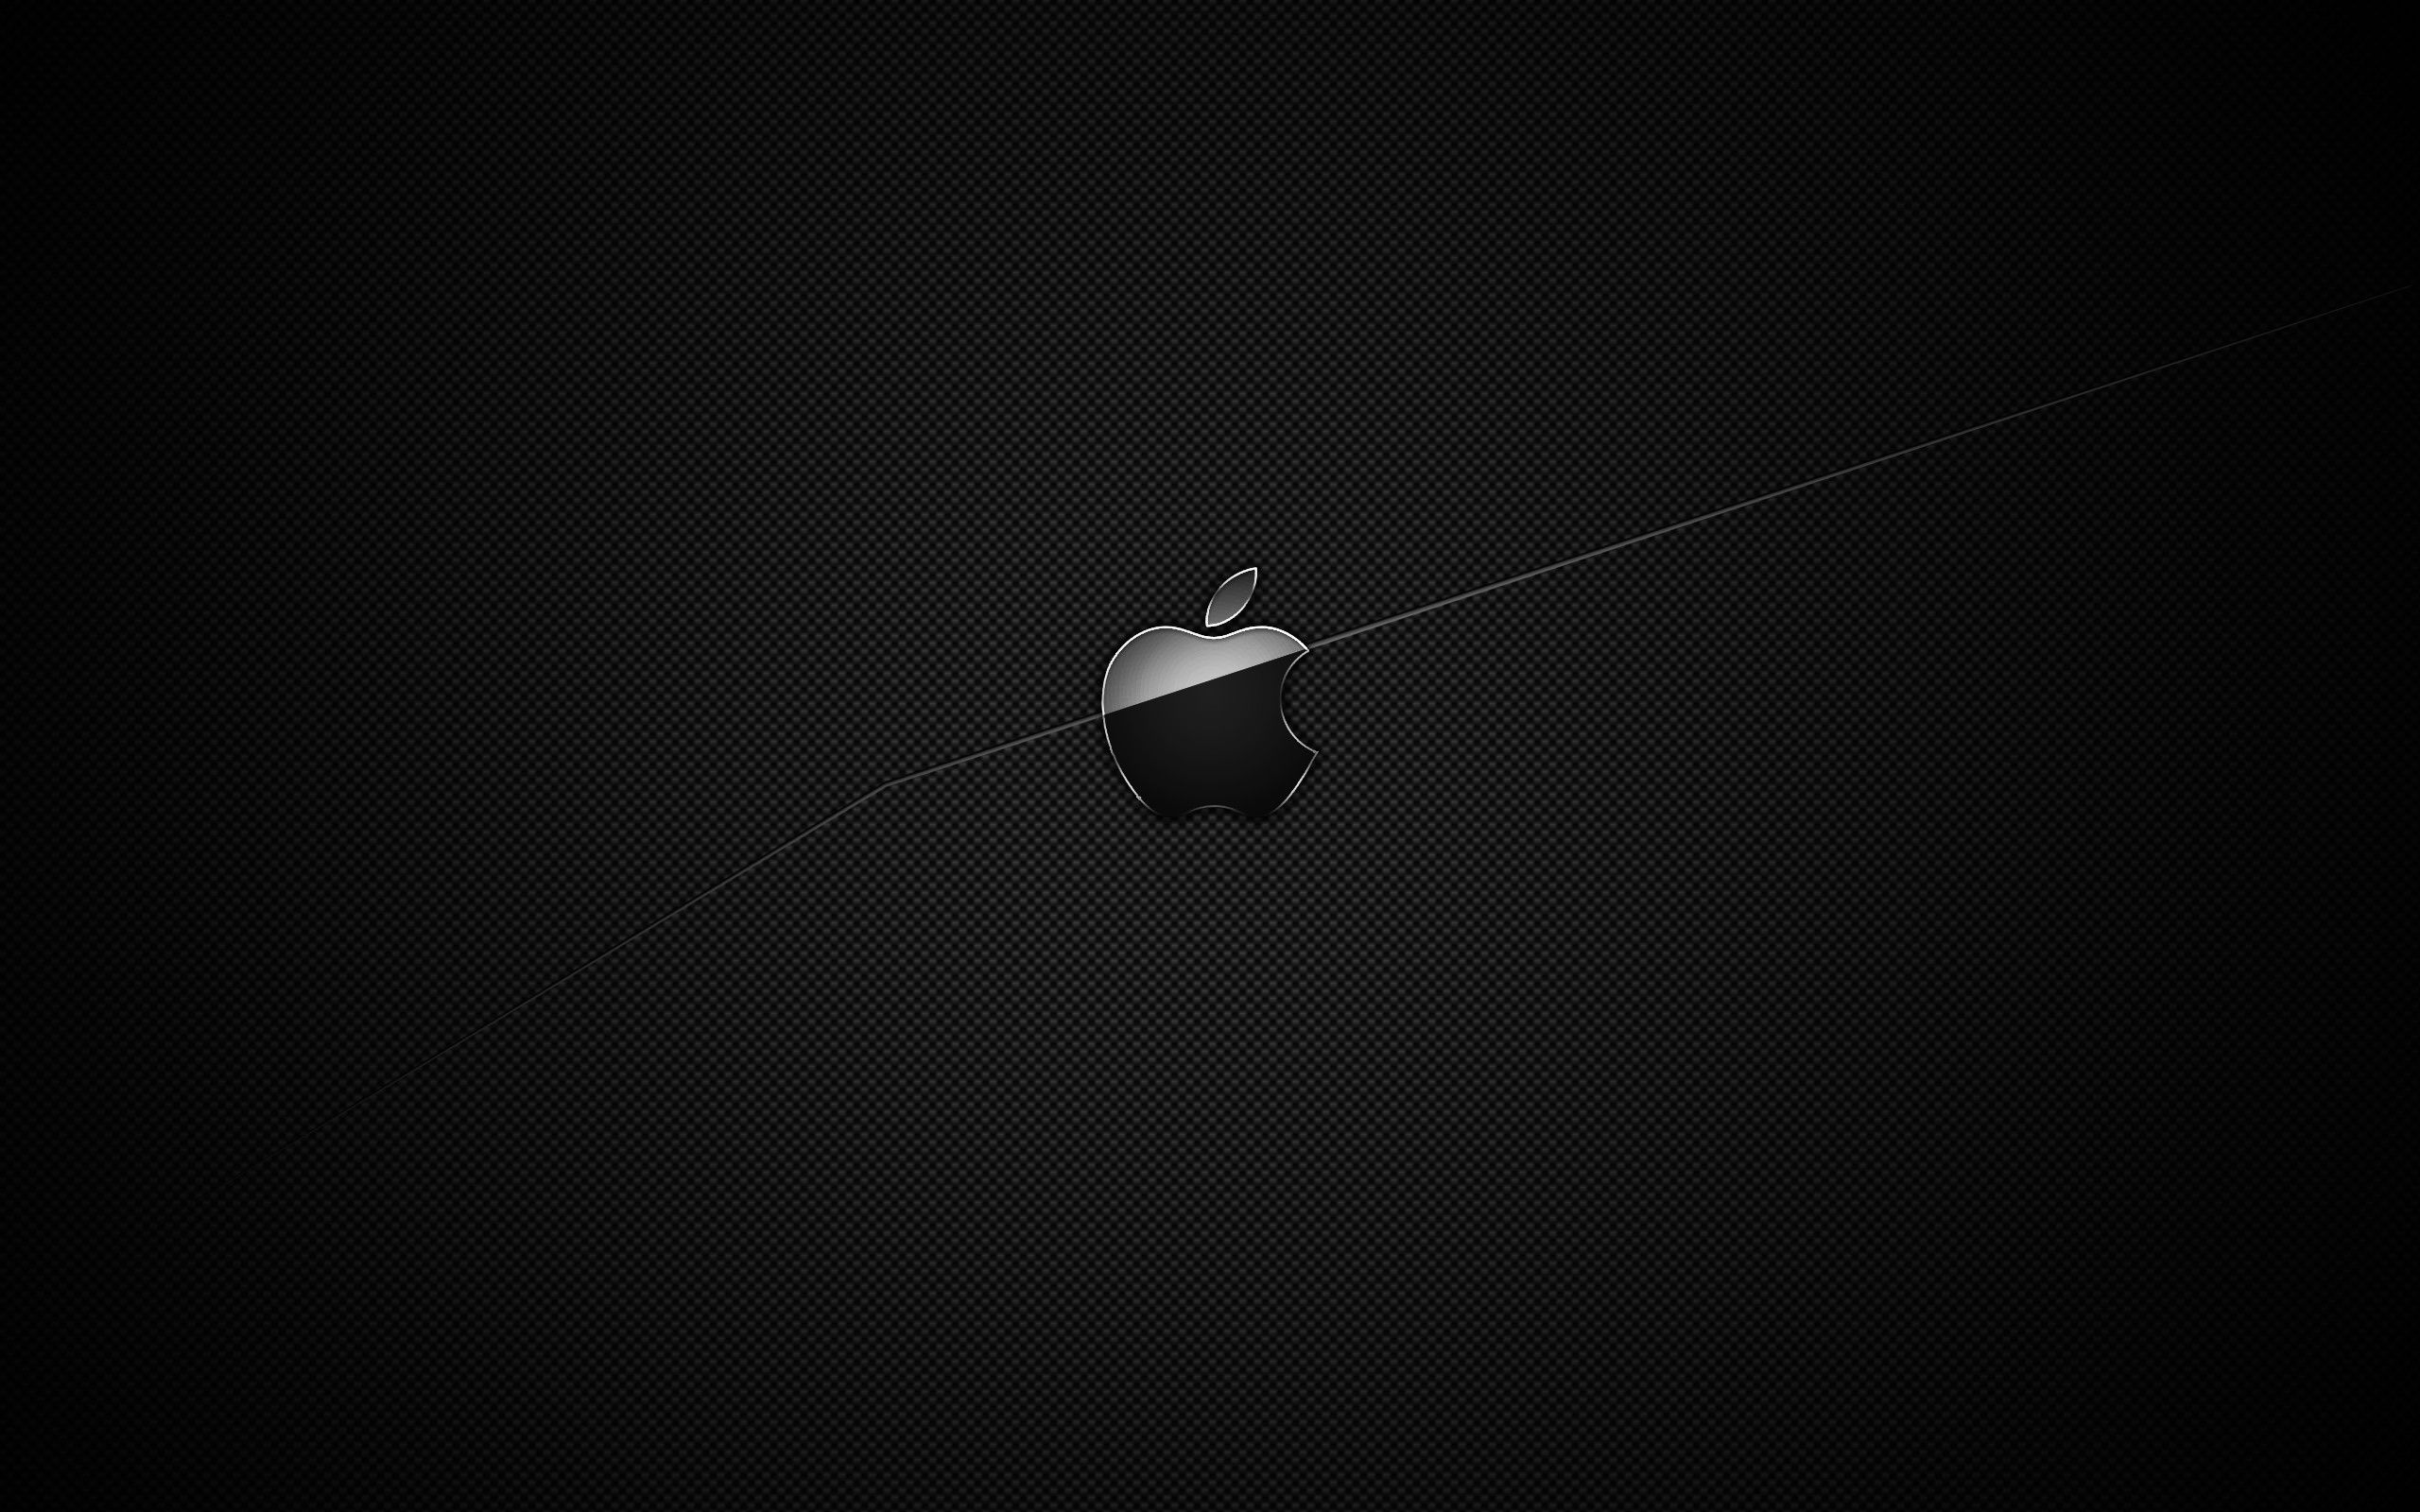 Black And White Apple Wallpaper 2560x1600